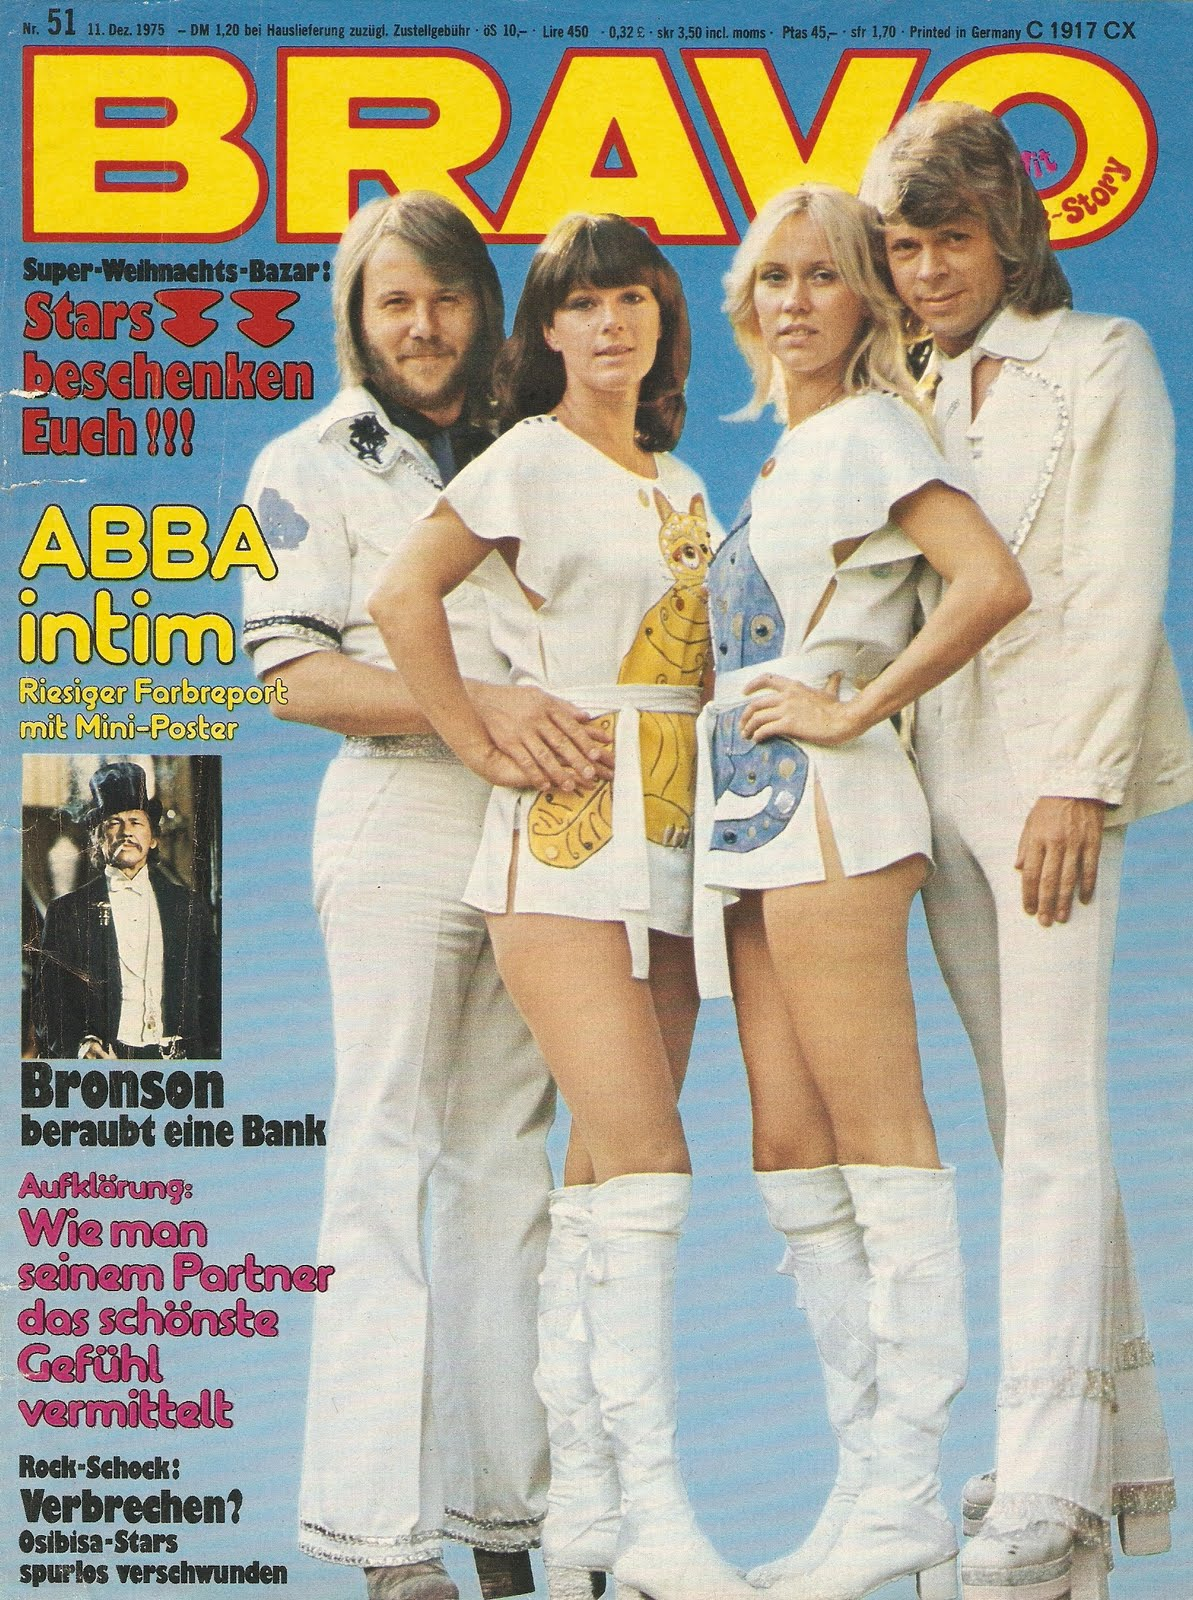 ABBA The Articles: Bravo, 1975: Everything about the currently most popular group in the world: ABBA